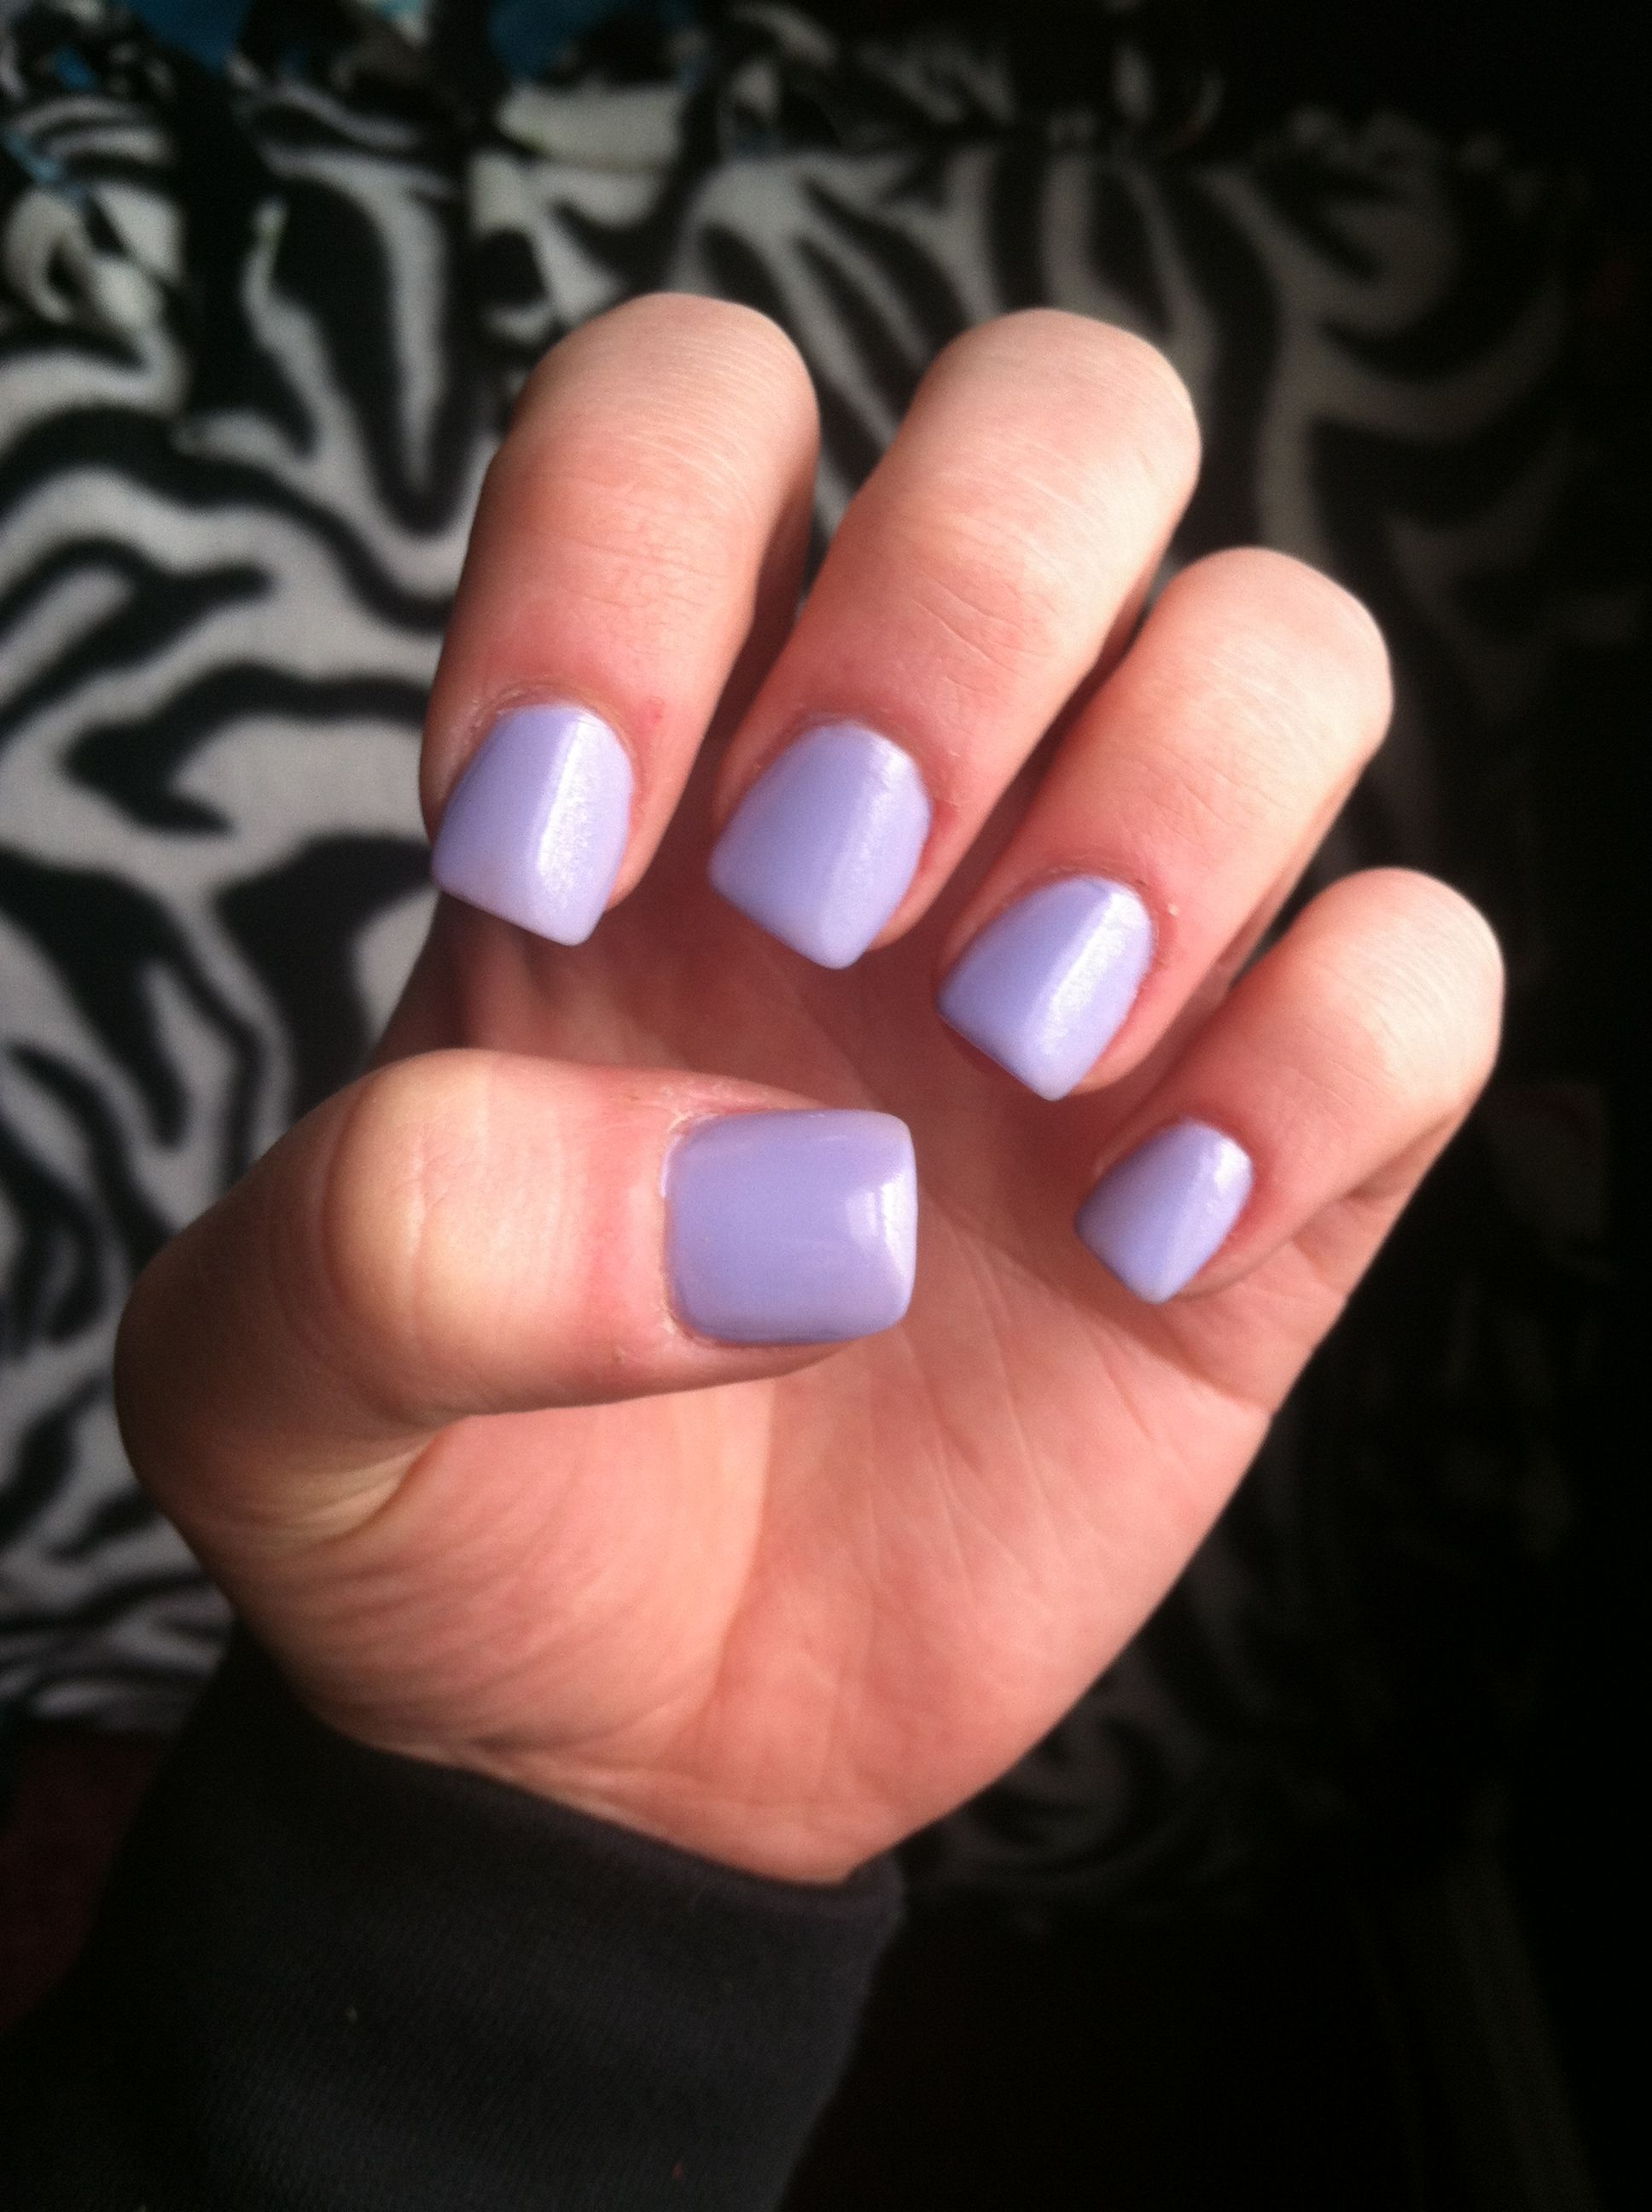 Purple Acrylic Nails Purple Acrylic Nails Square Nails Short Square Acrylic Nails